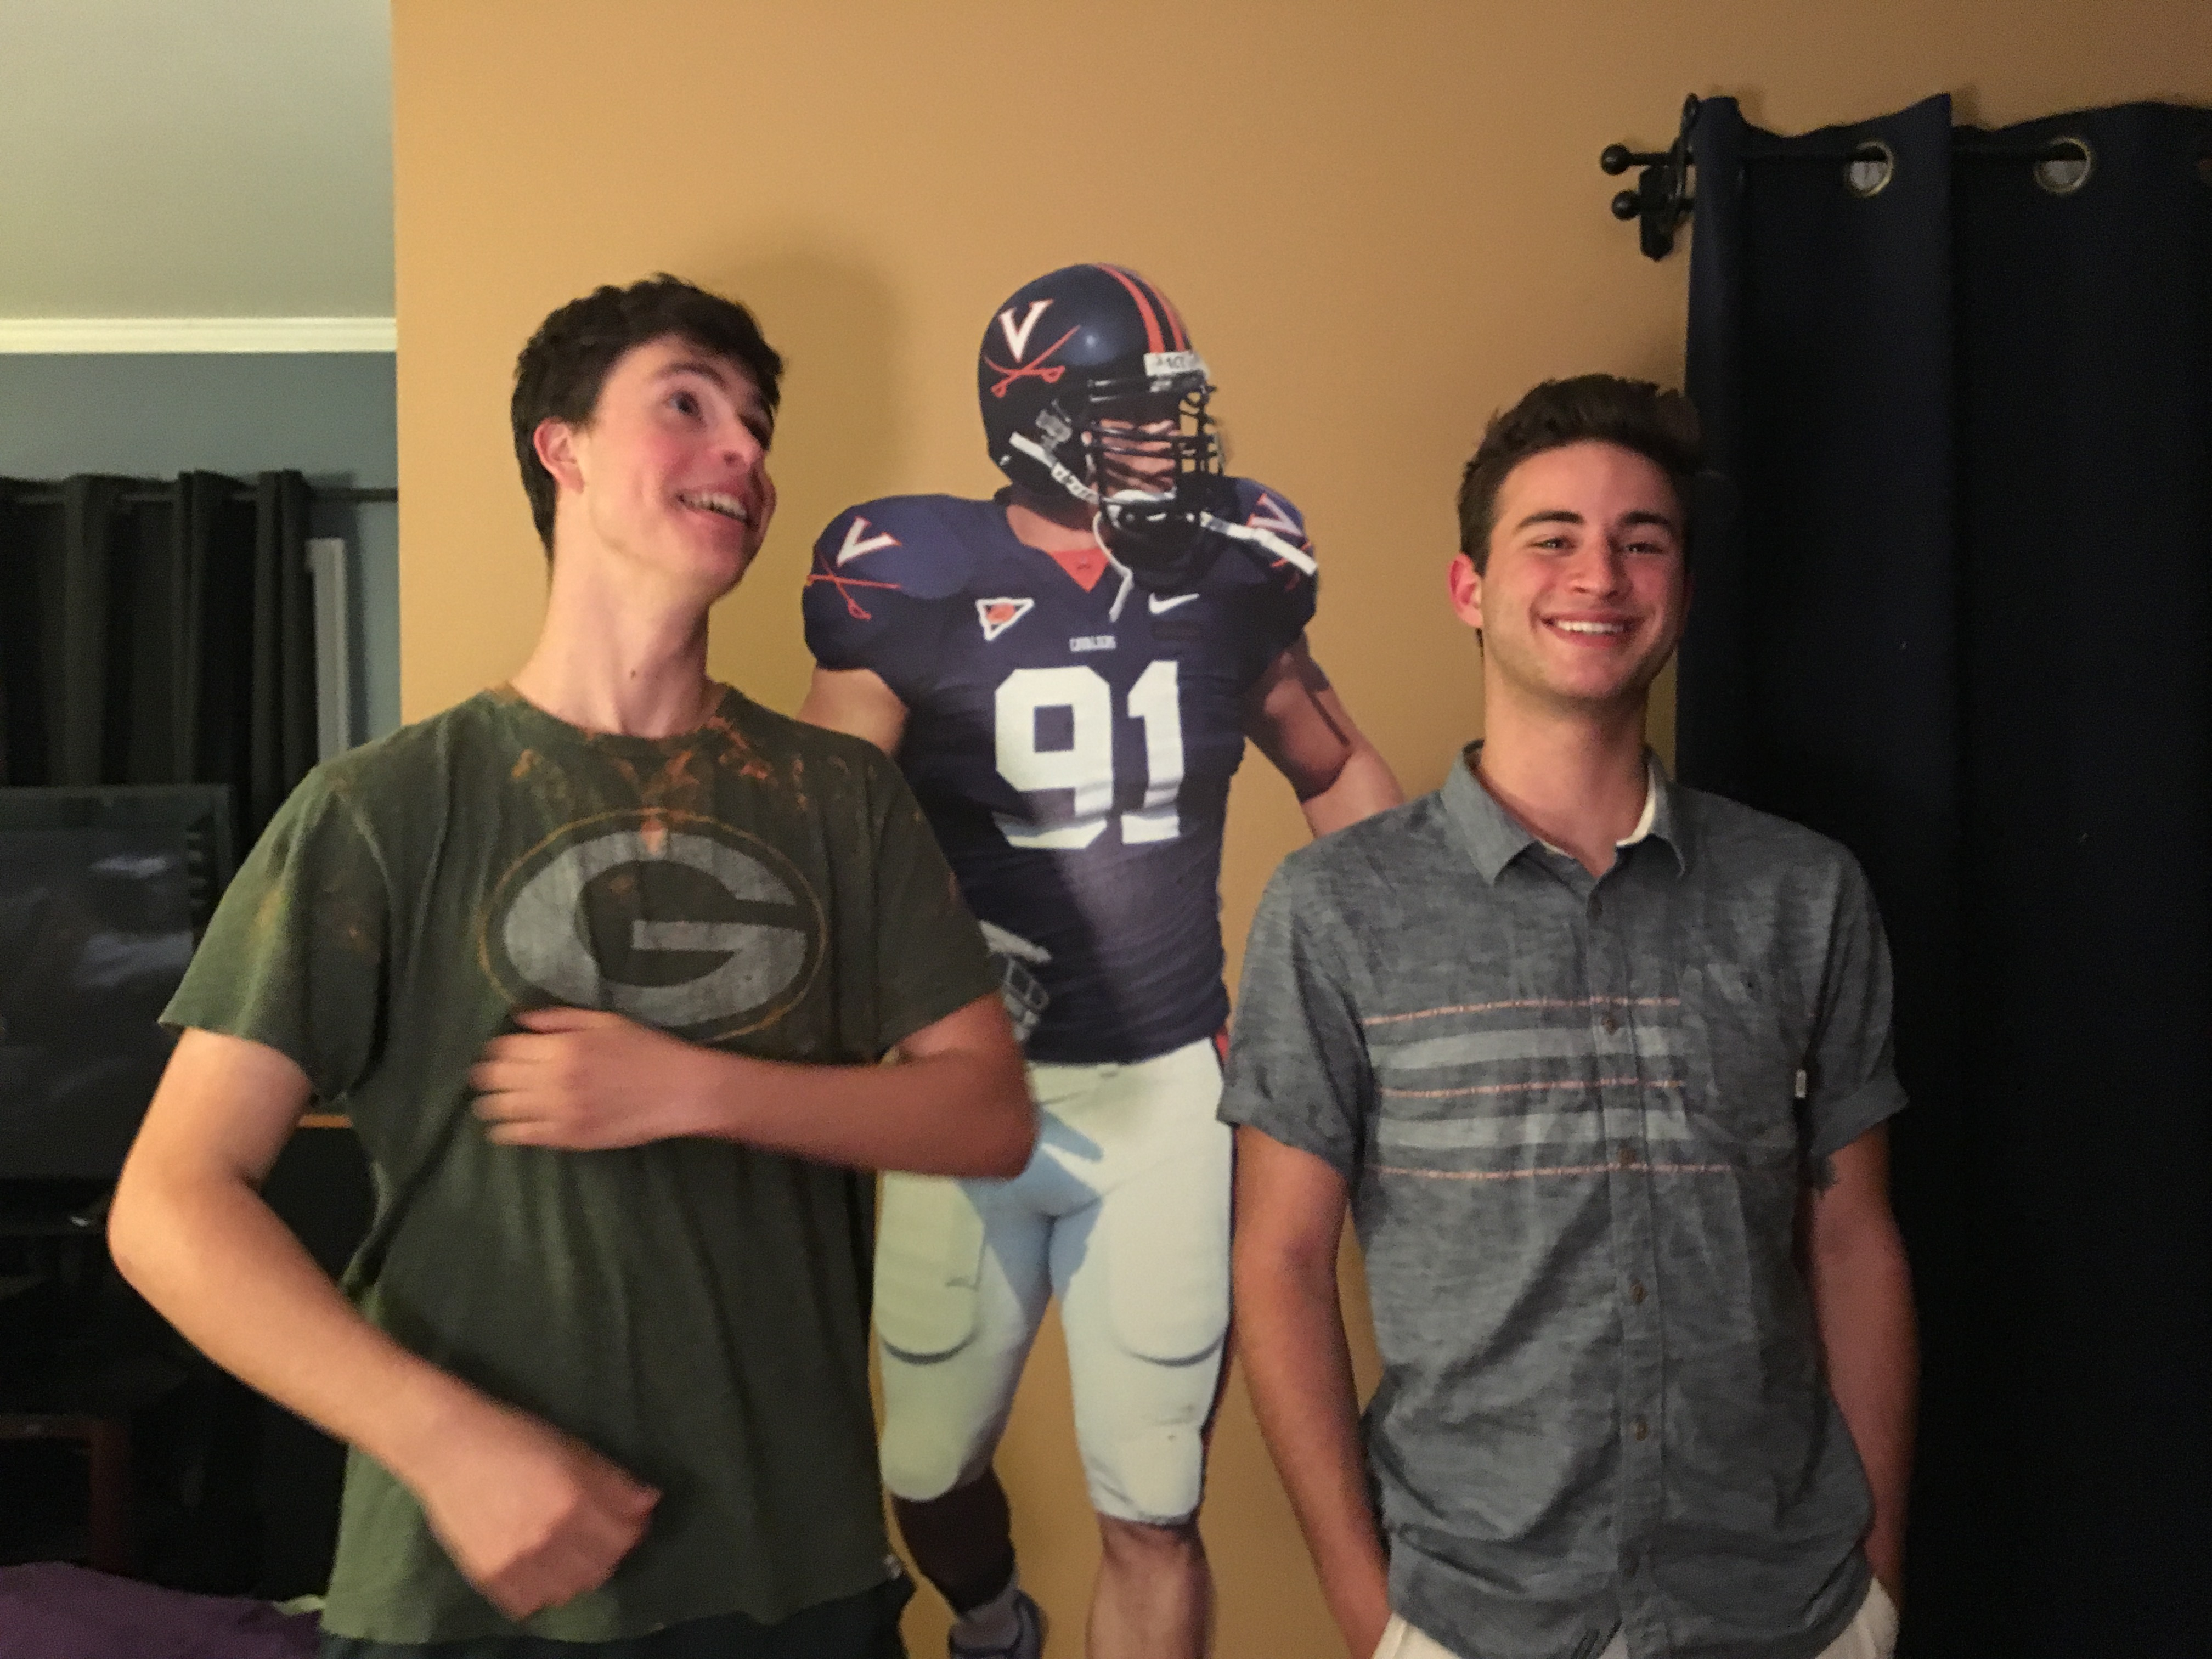 Mark and Samuel pose in front of a stick on wall graphic of a University of Virginia football player